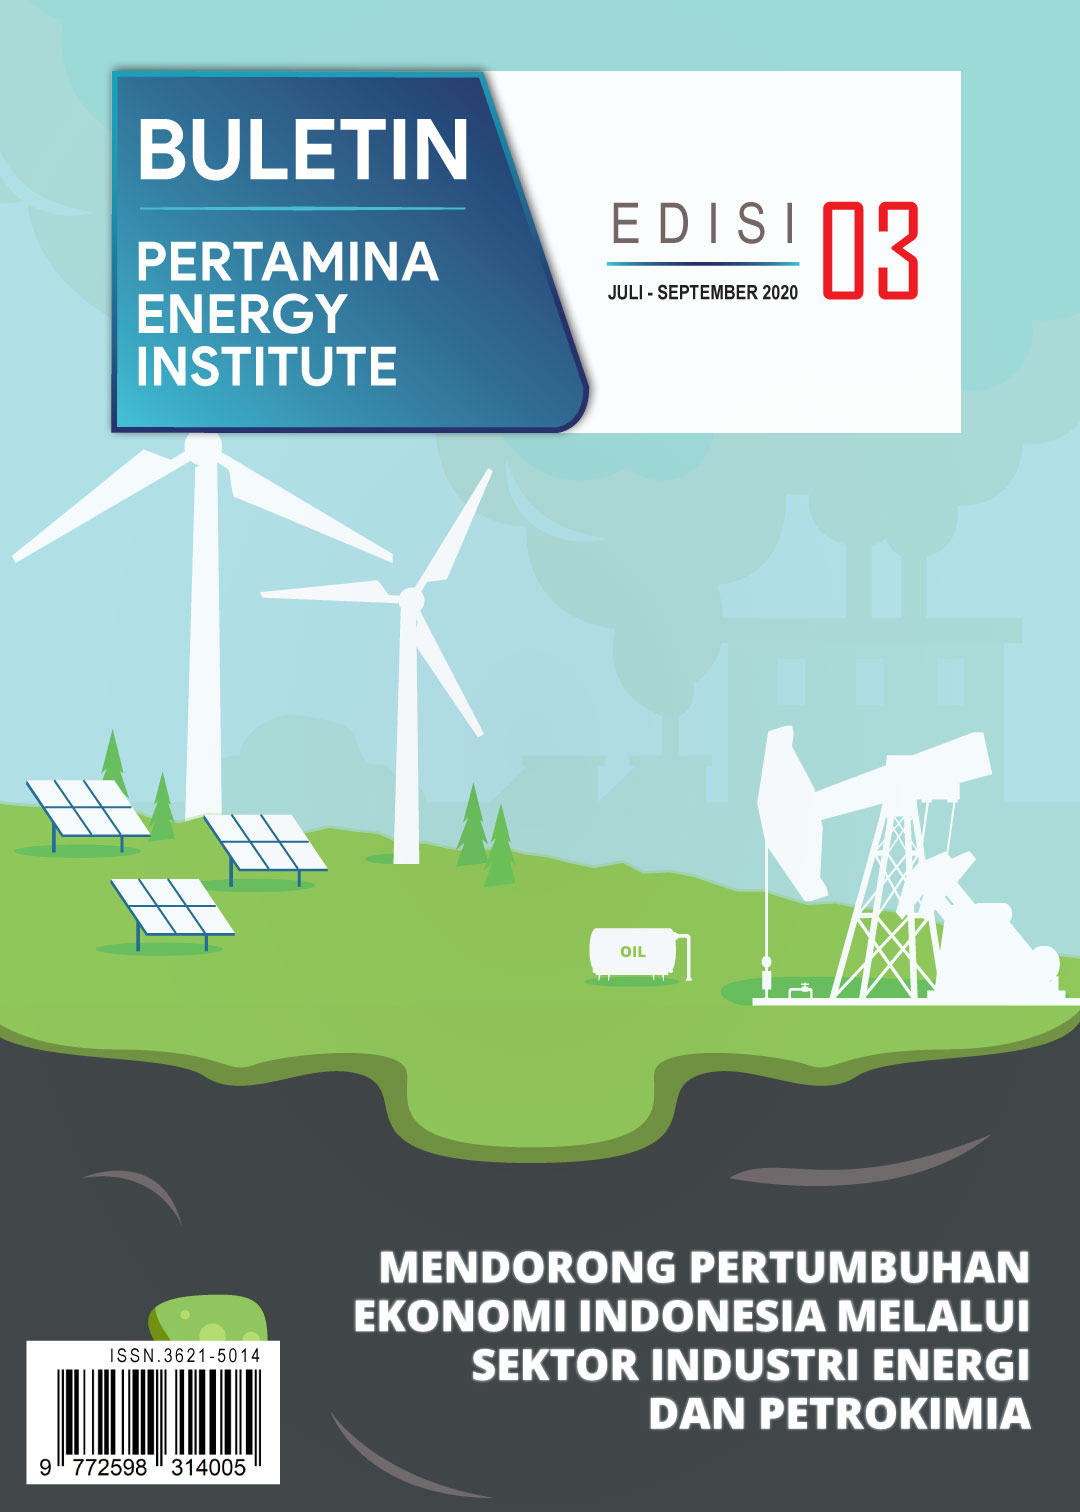 Pertamina Energy Institute - Edisi 03 (Juli - September 2020)